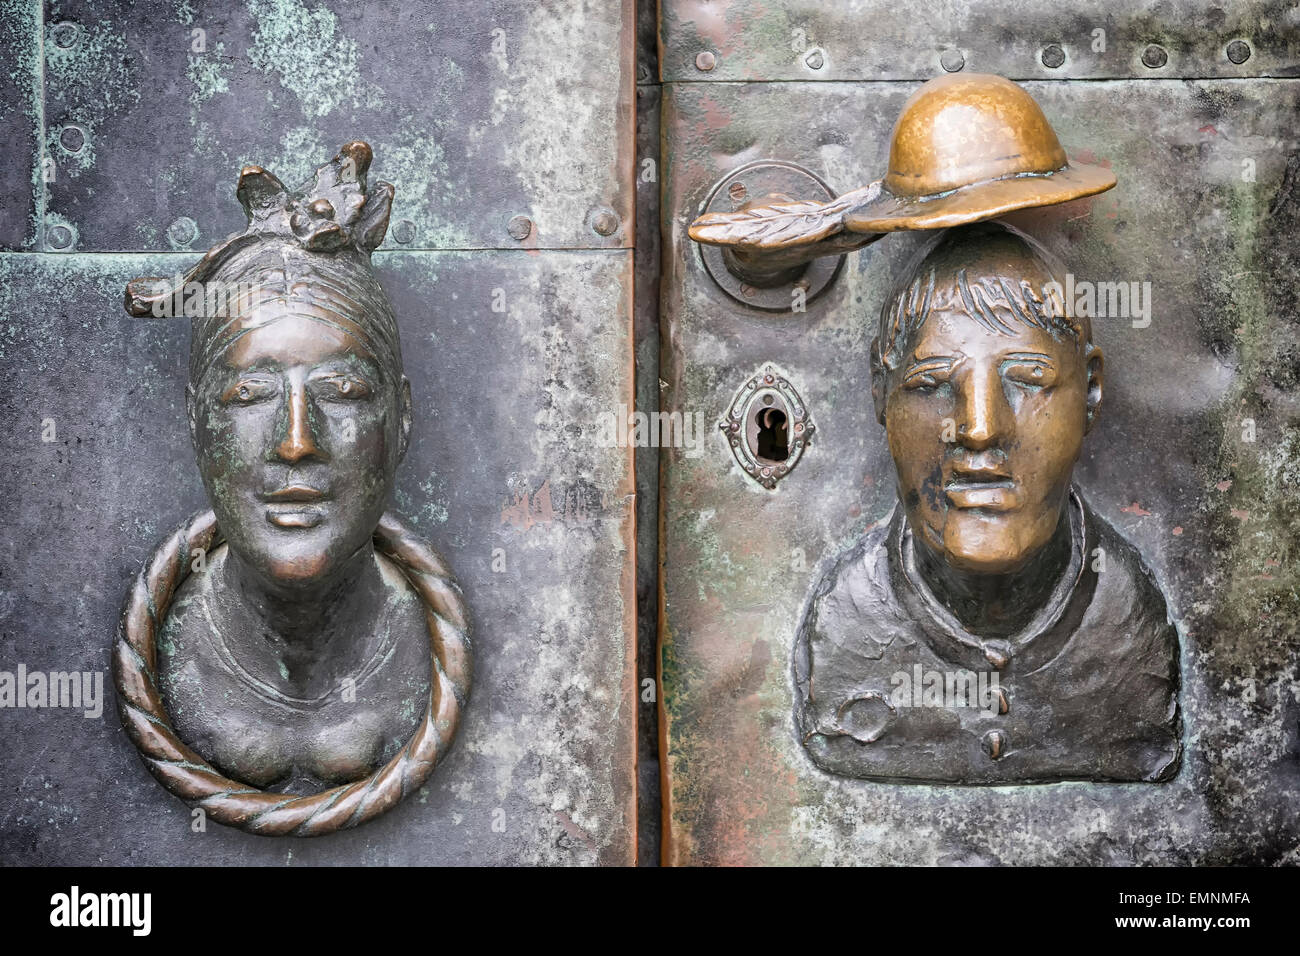 Door made of bronze with the head of a woman and a man as a door knob in Magdeburg, Germany - Stock Image